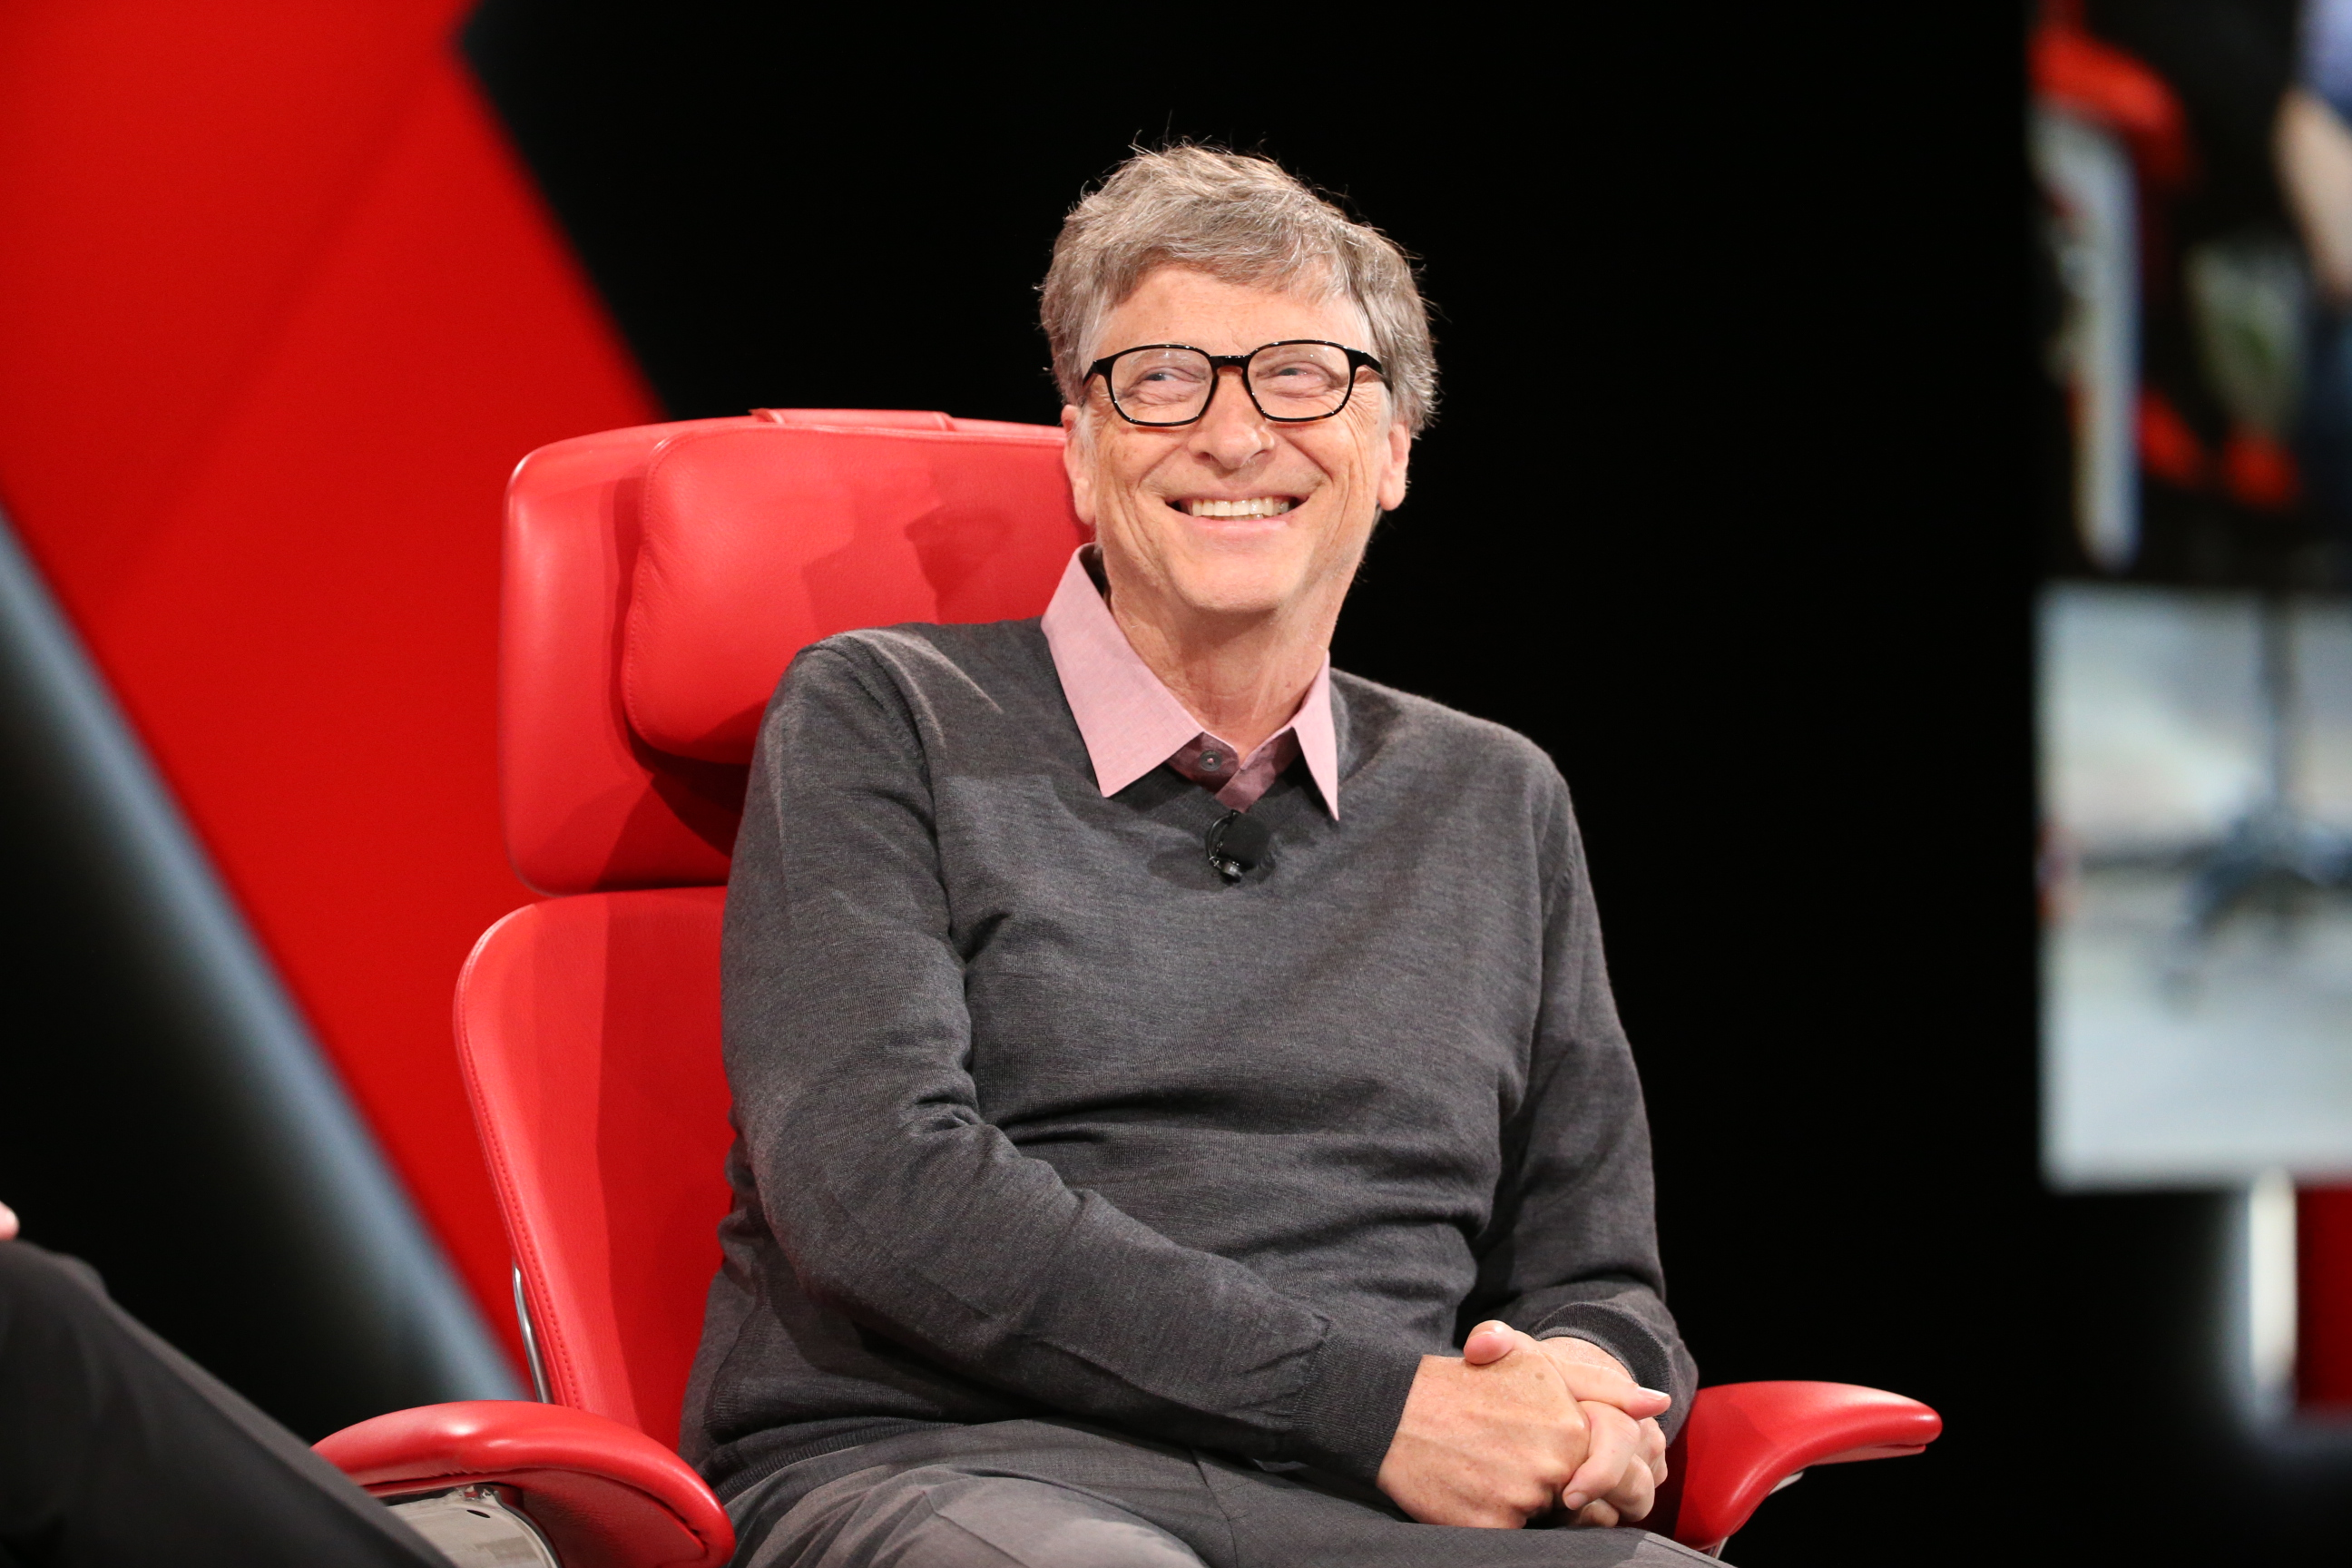 Bill Gates, speaking at Code Conference 2016